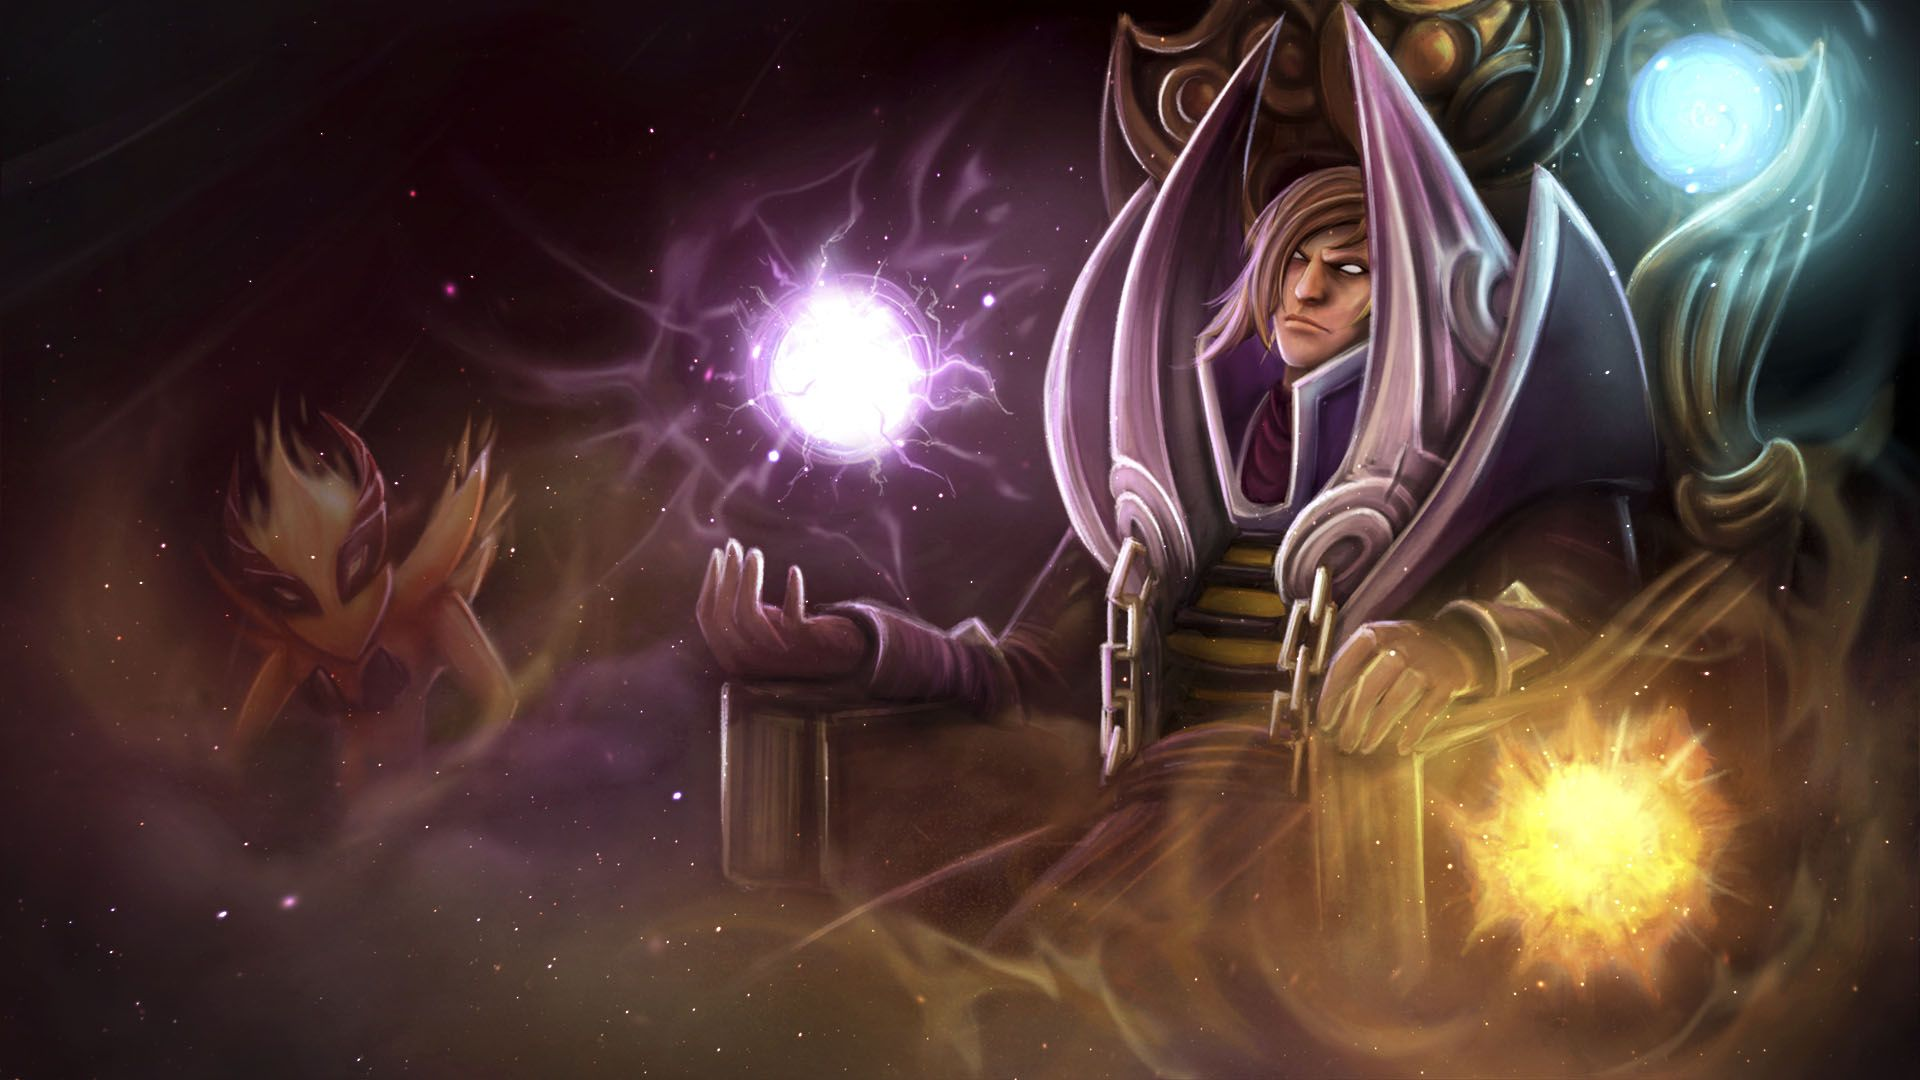 Image For Cool Invoker Dota 2 HD Wallpaper Hd Screensavers Wallpapers